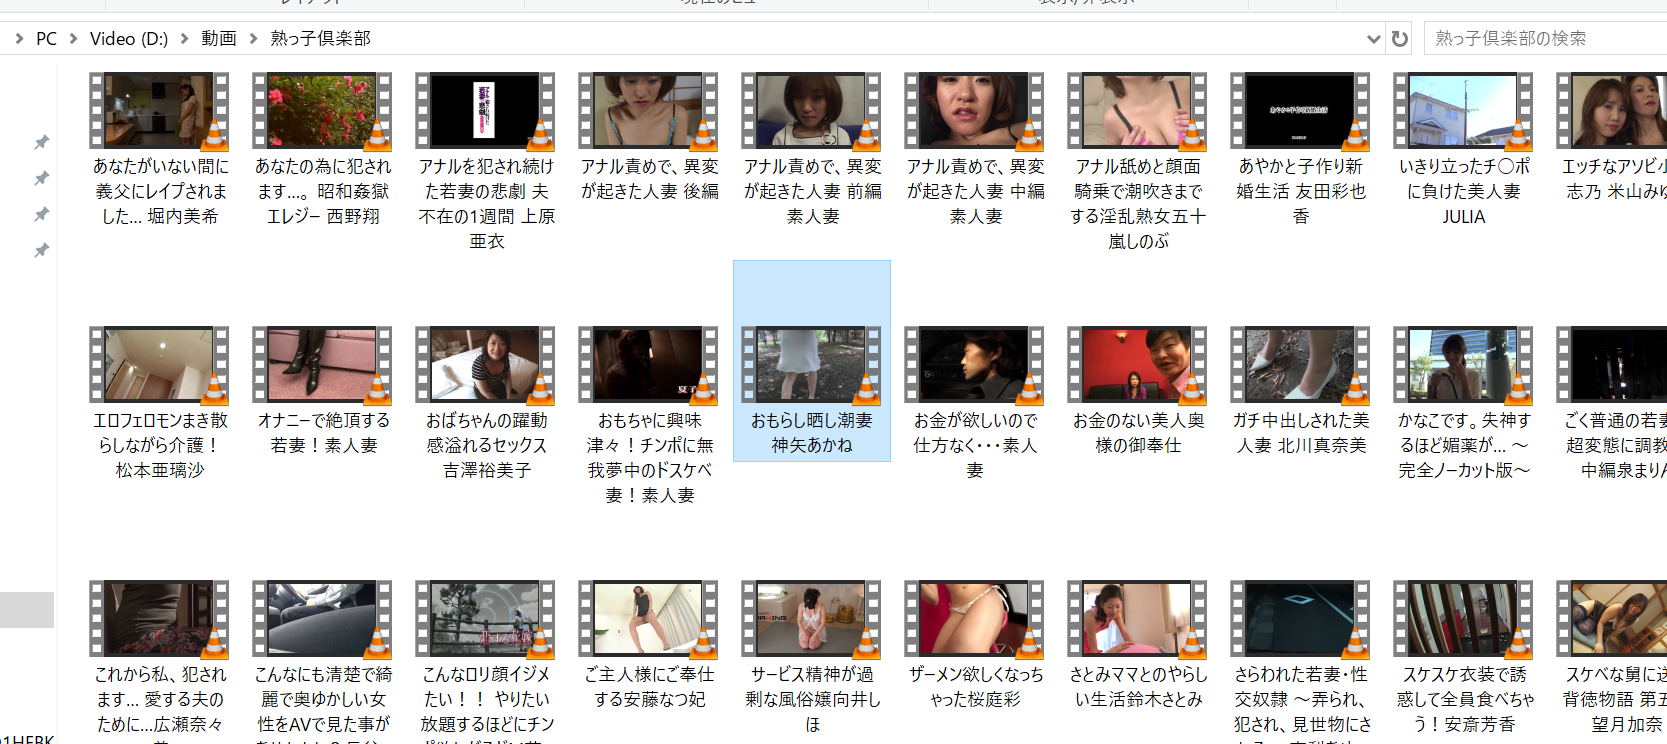 some of the JAV SEX videos I actually downloaded from the Urekko Club